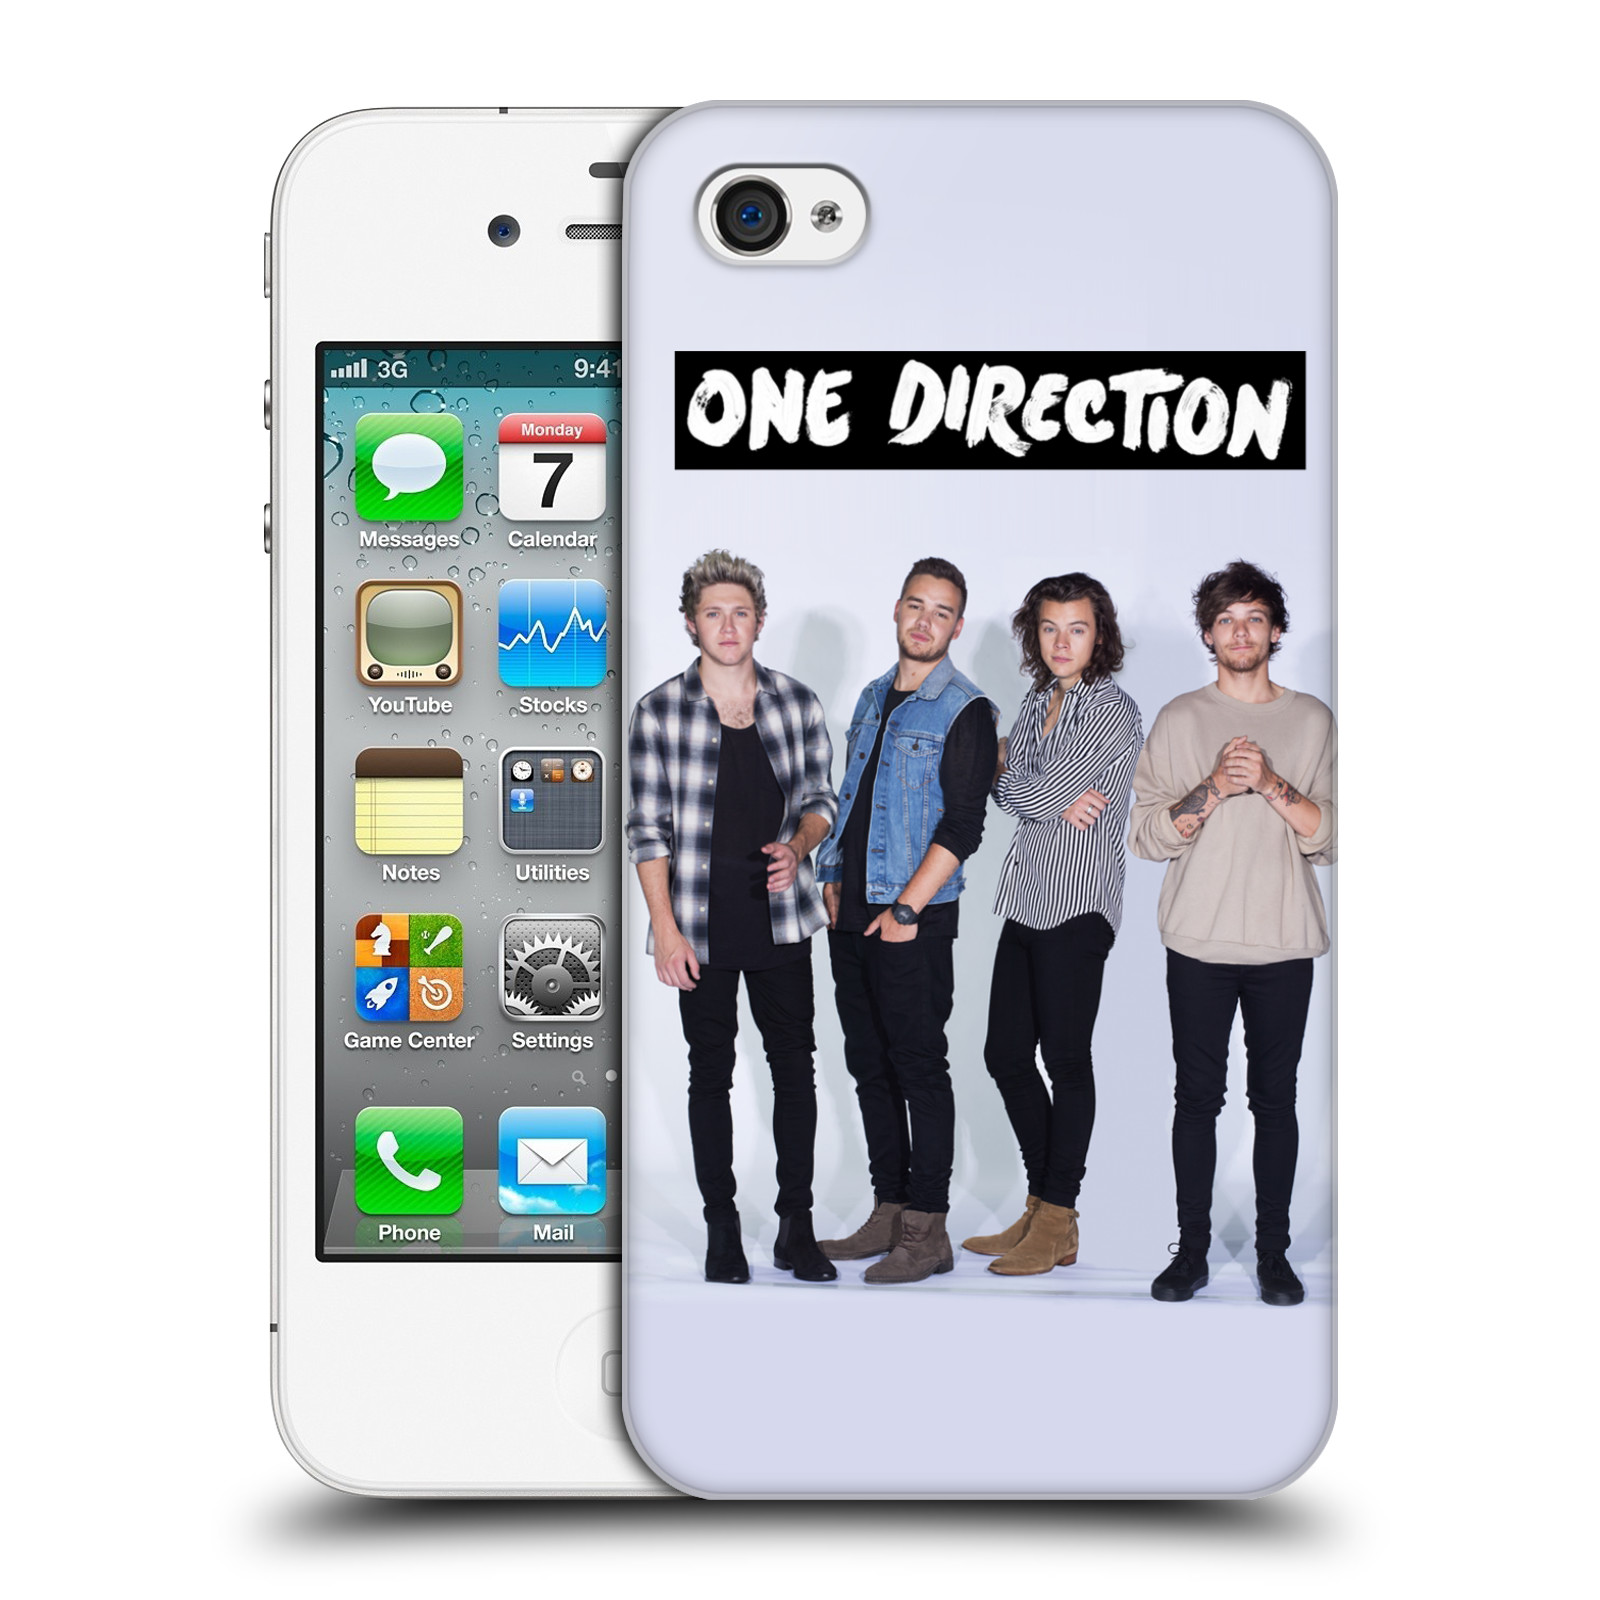 OFFICIAL-ONE-DIRECTION-GROUP-PHOTOS-HARD-BACK-CASE-FOR-APPLE-iPHONE-4-4S